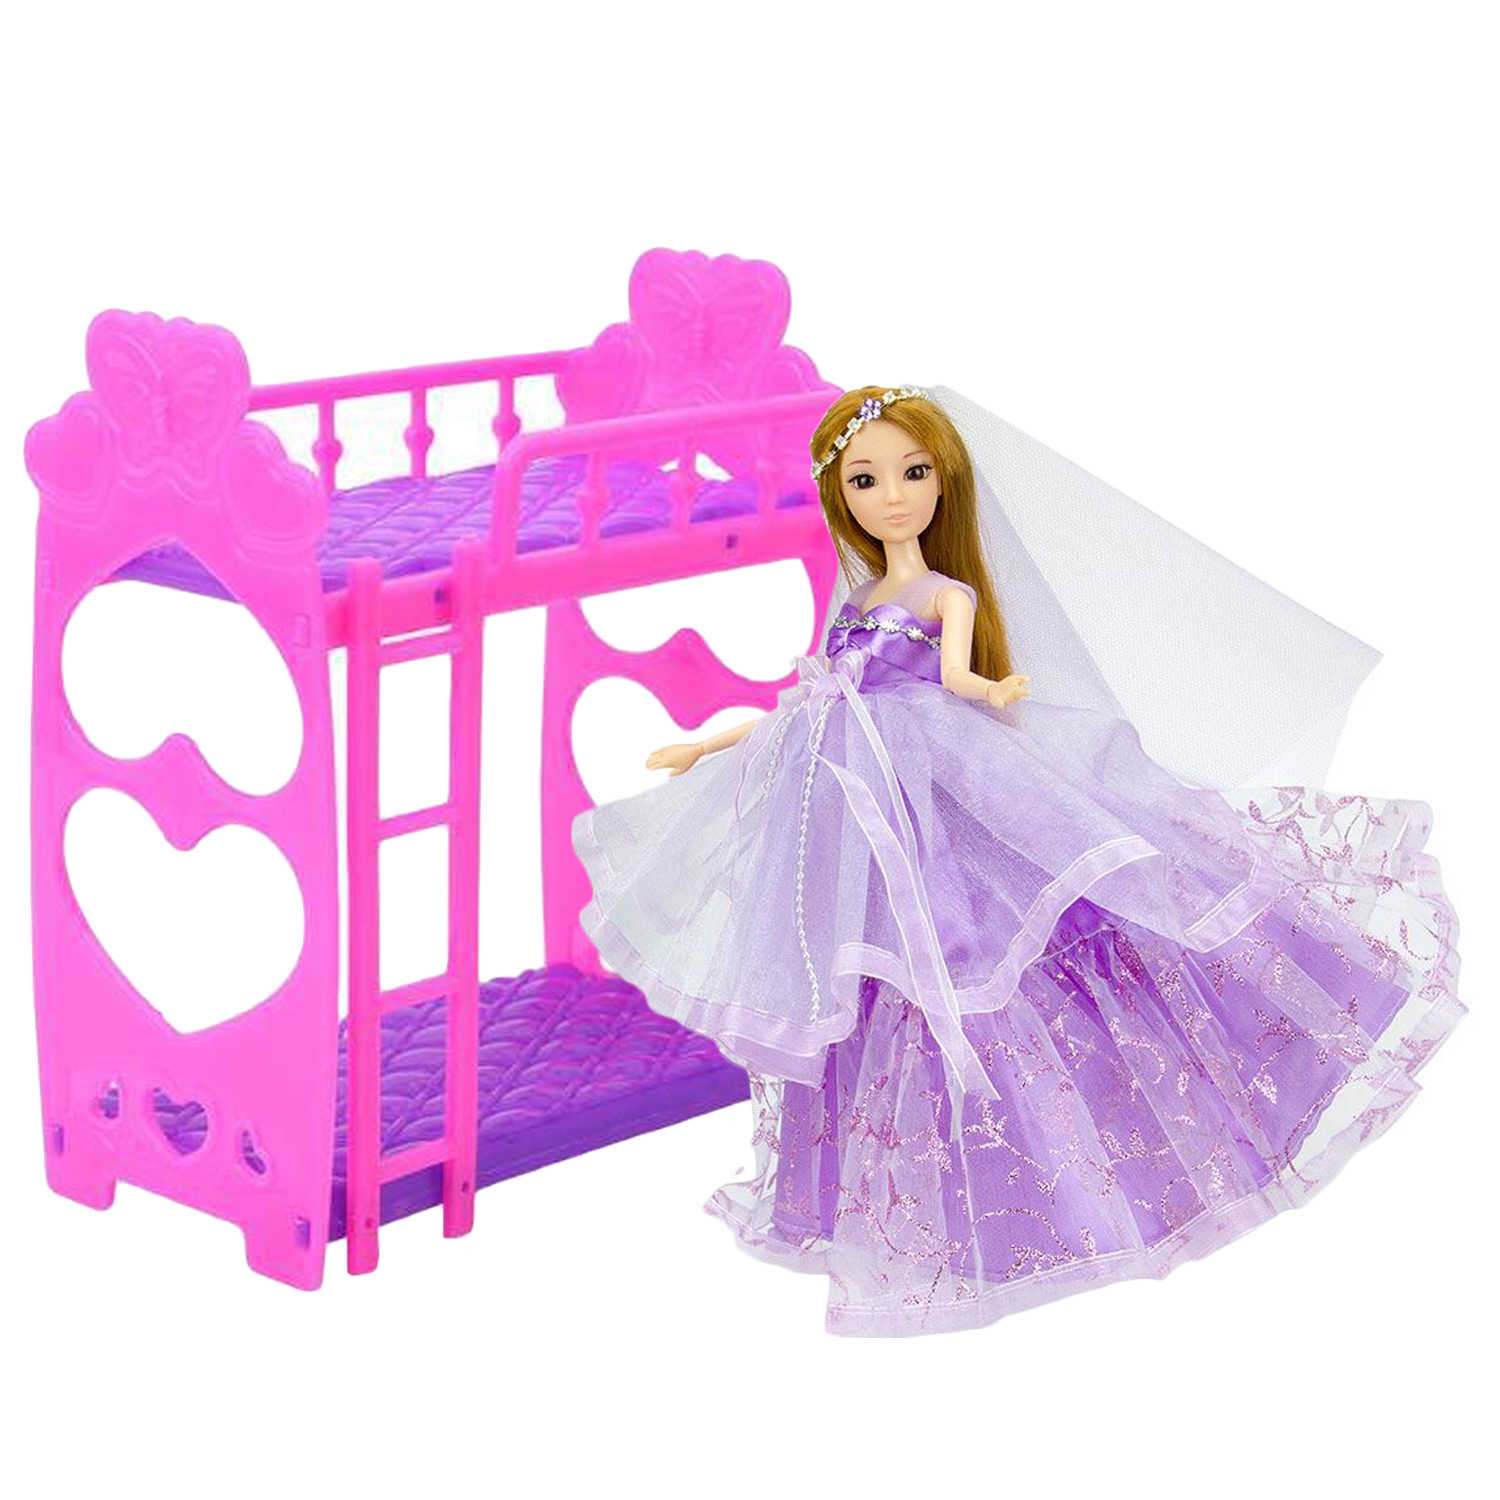 Kids Cute Doll Bunk Bed Detachable Bed Frame Bedroom Dollhouse Double Bed Dolls Pink Furniture Accessories For Barbie Toy Aliexpress